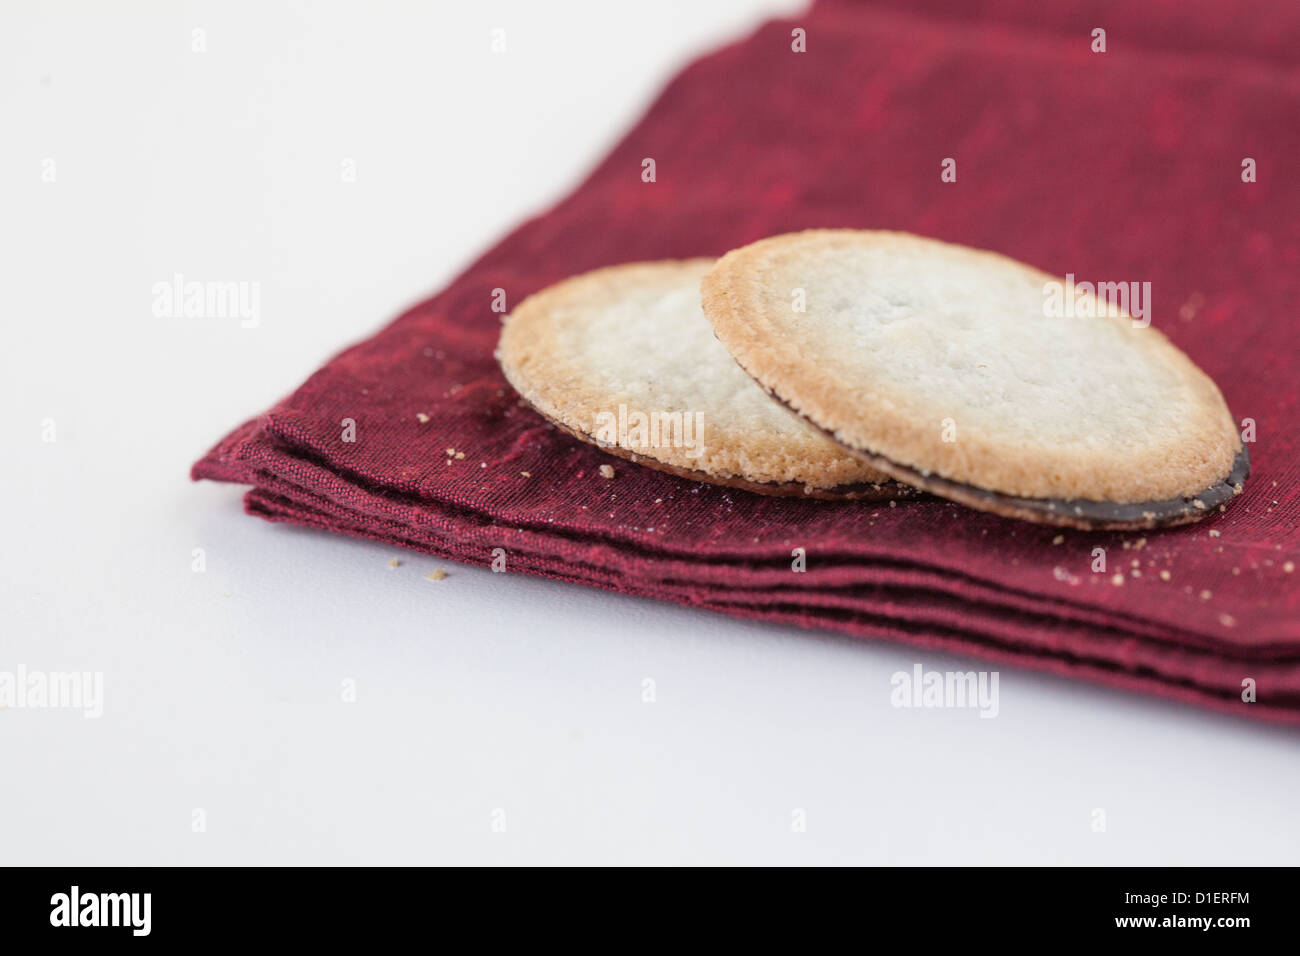 two cookies sit on maroon napkin - Stock Image